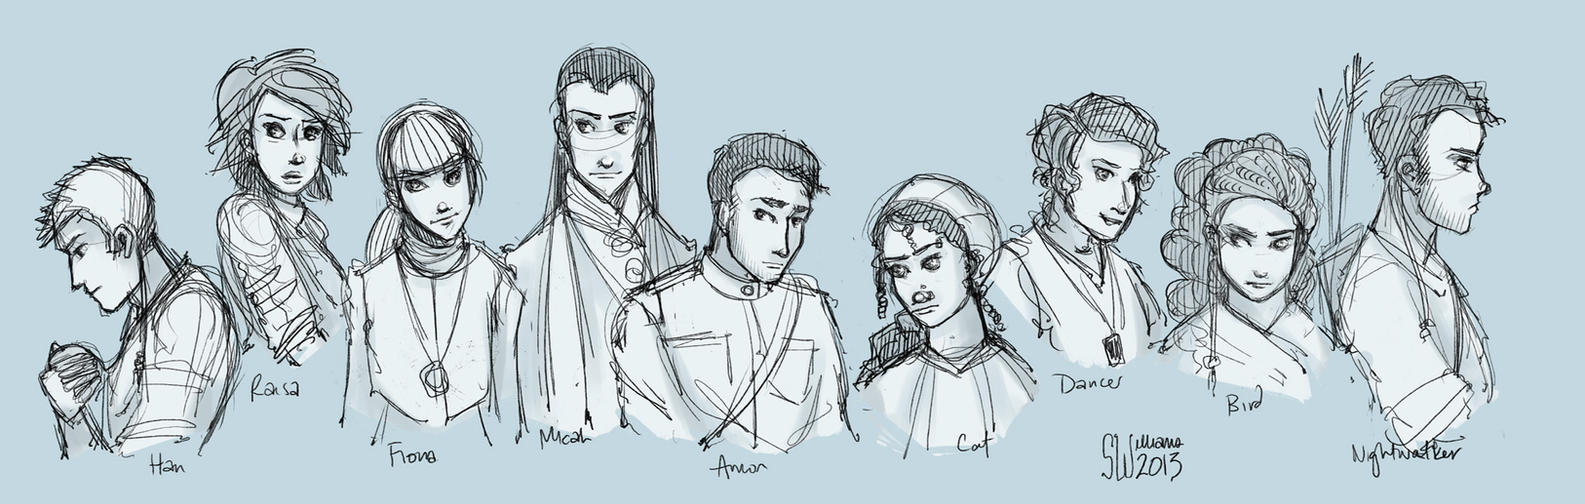 Exiled Queen - Sketch Dump by leabharlann